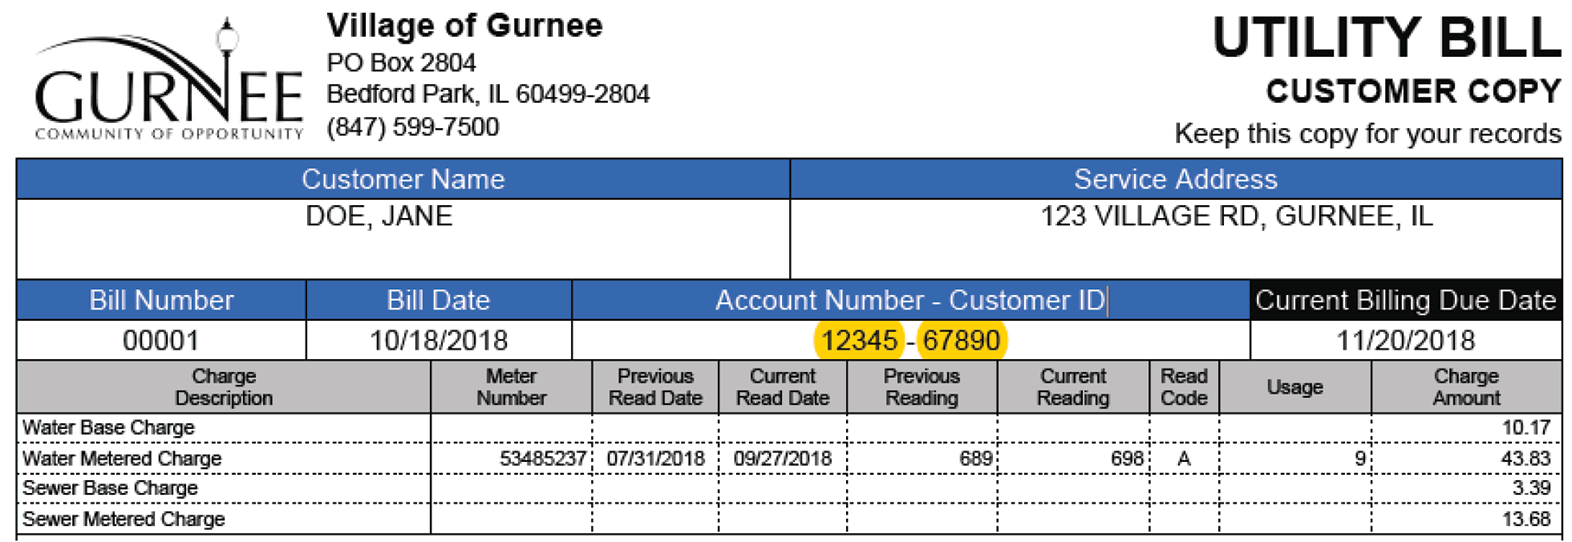 Picture of current water bill with account number and customer ID highlighted to show location on bill.